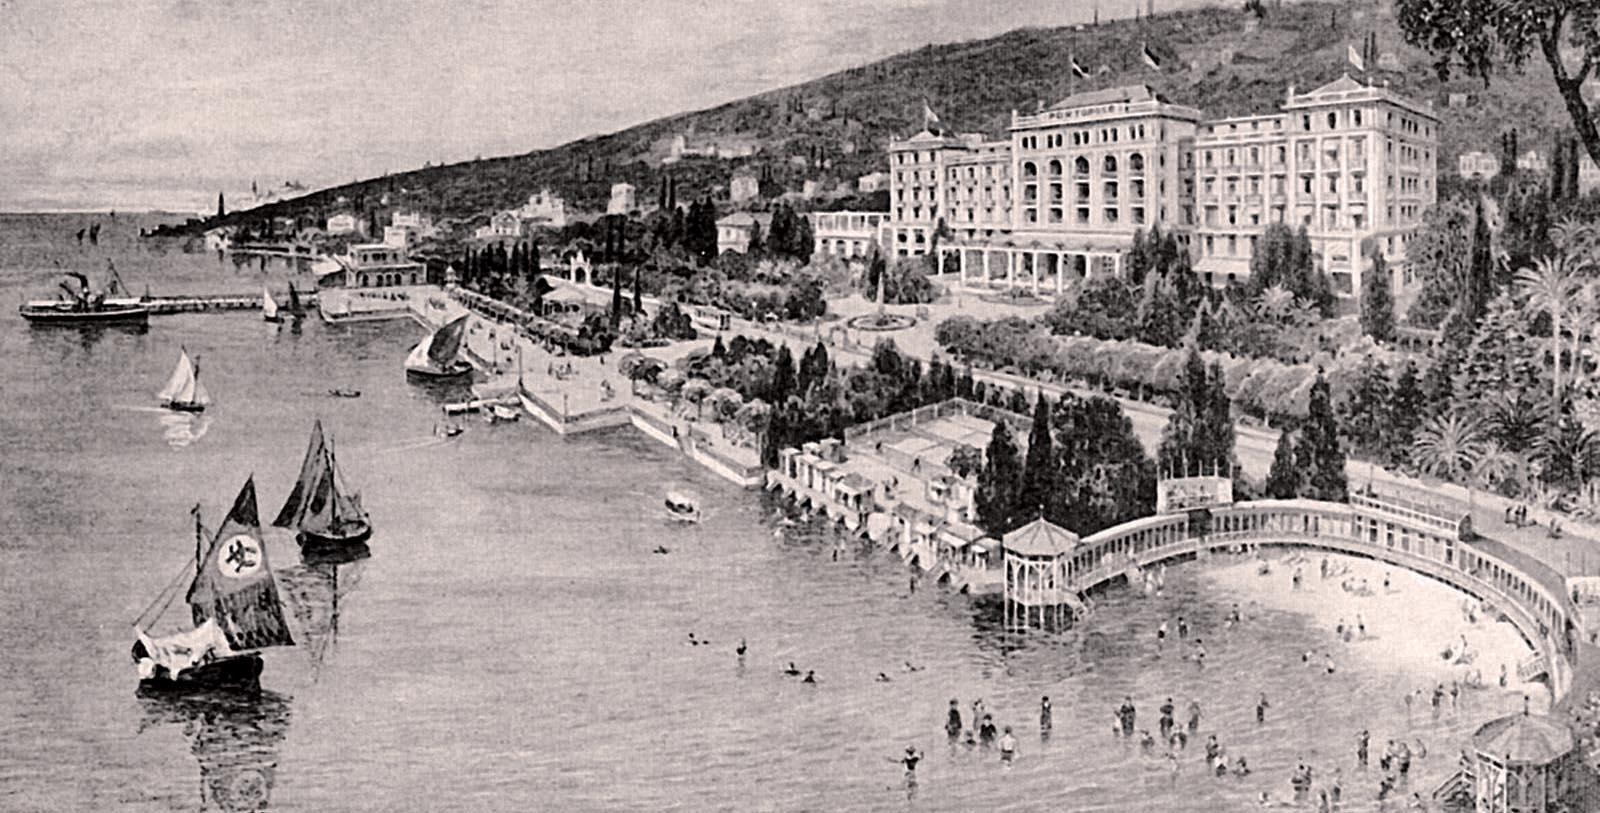 Historic Image of Hotel Exterior Kempinski Palace Portorož, 1908, Member of Historic Hotels Worldwide, in Portoroz, Slovenia, Discover